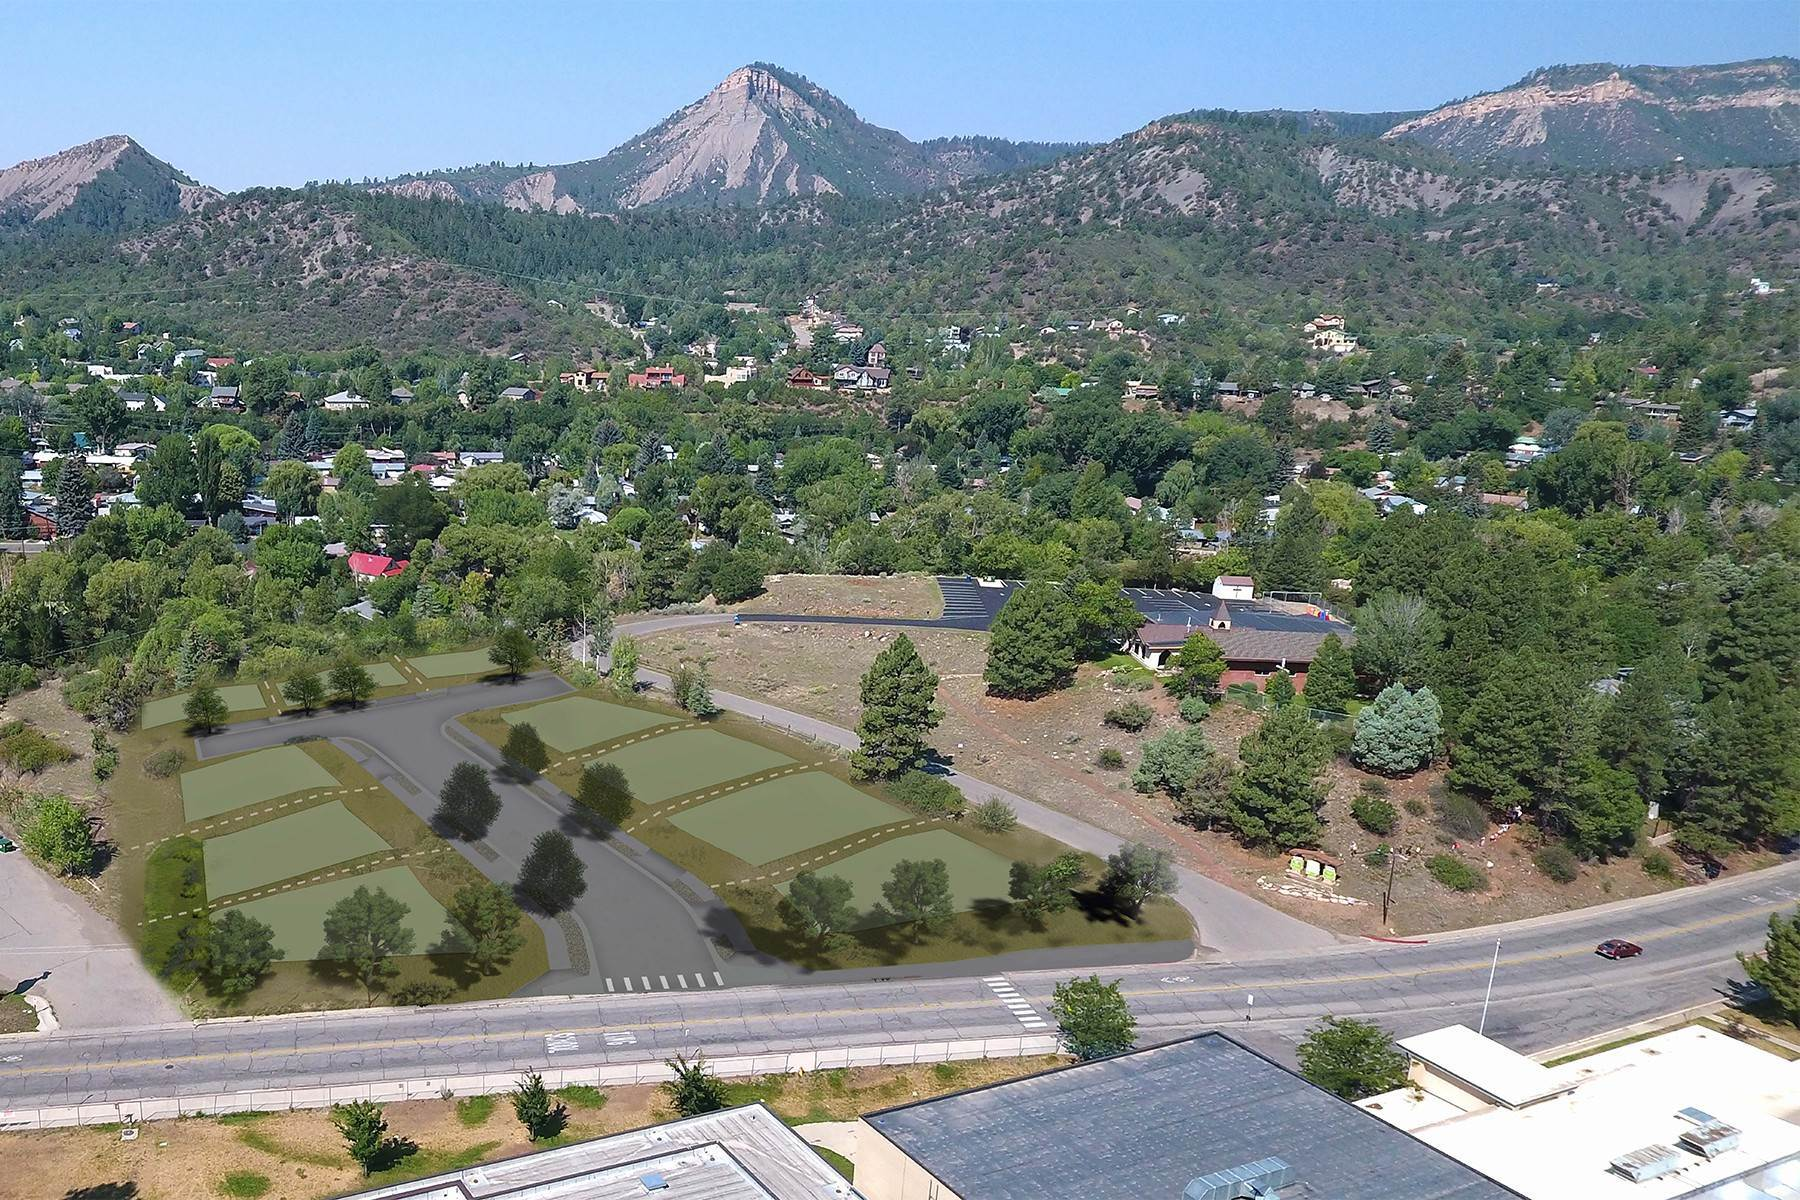 Property for Sale at 6 Calle de Rincon Durango, Colorado 81301 United States